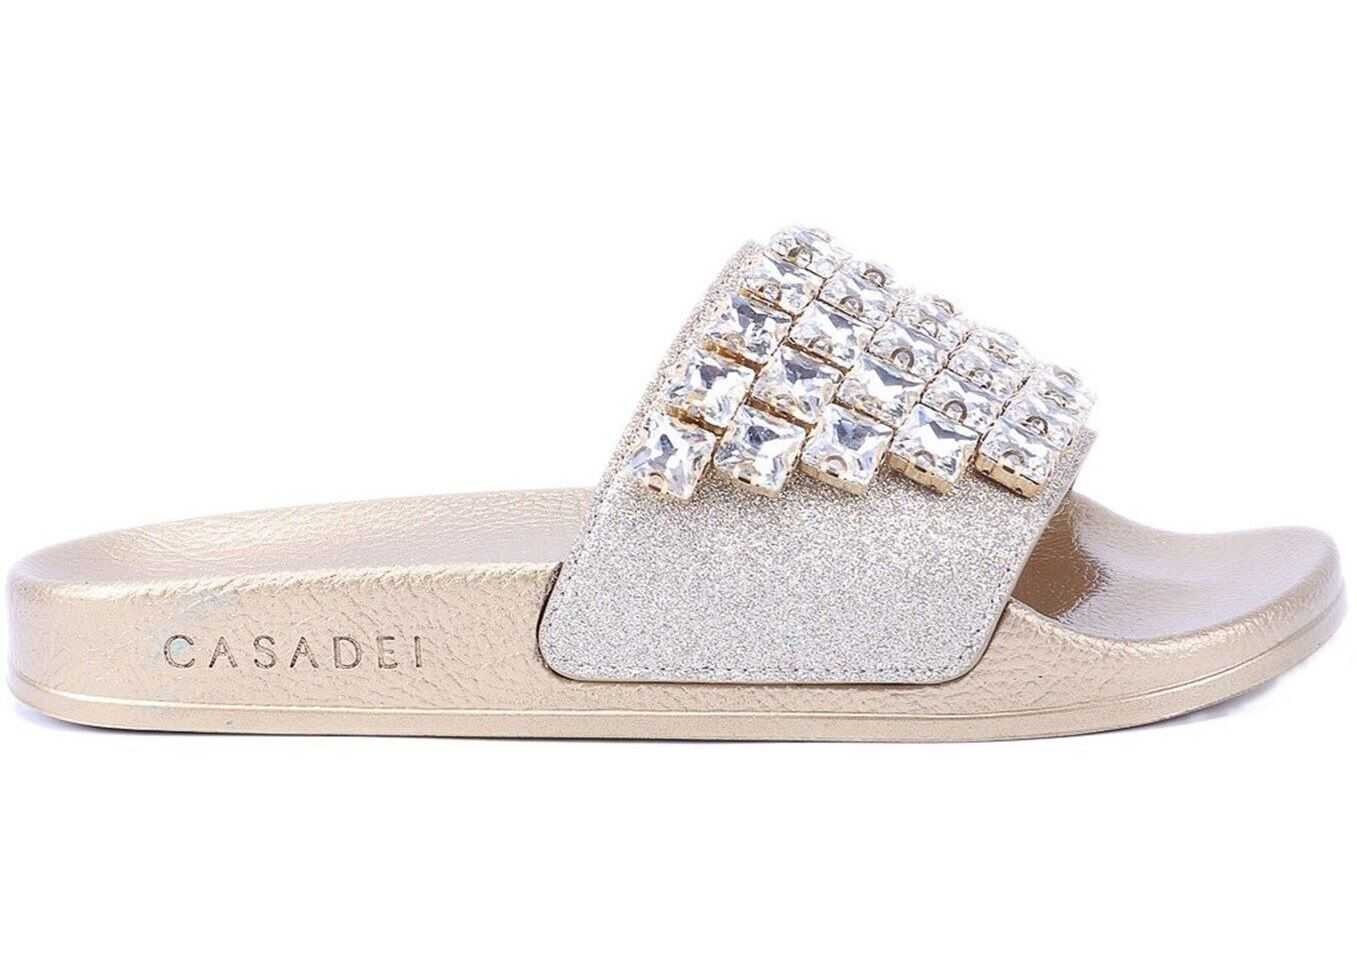 Casadei City Lights Pool Splendid Flats Gold